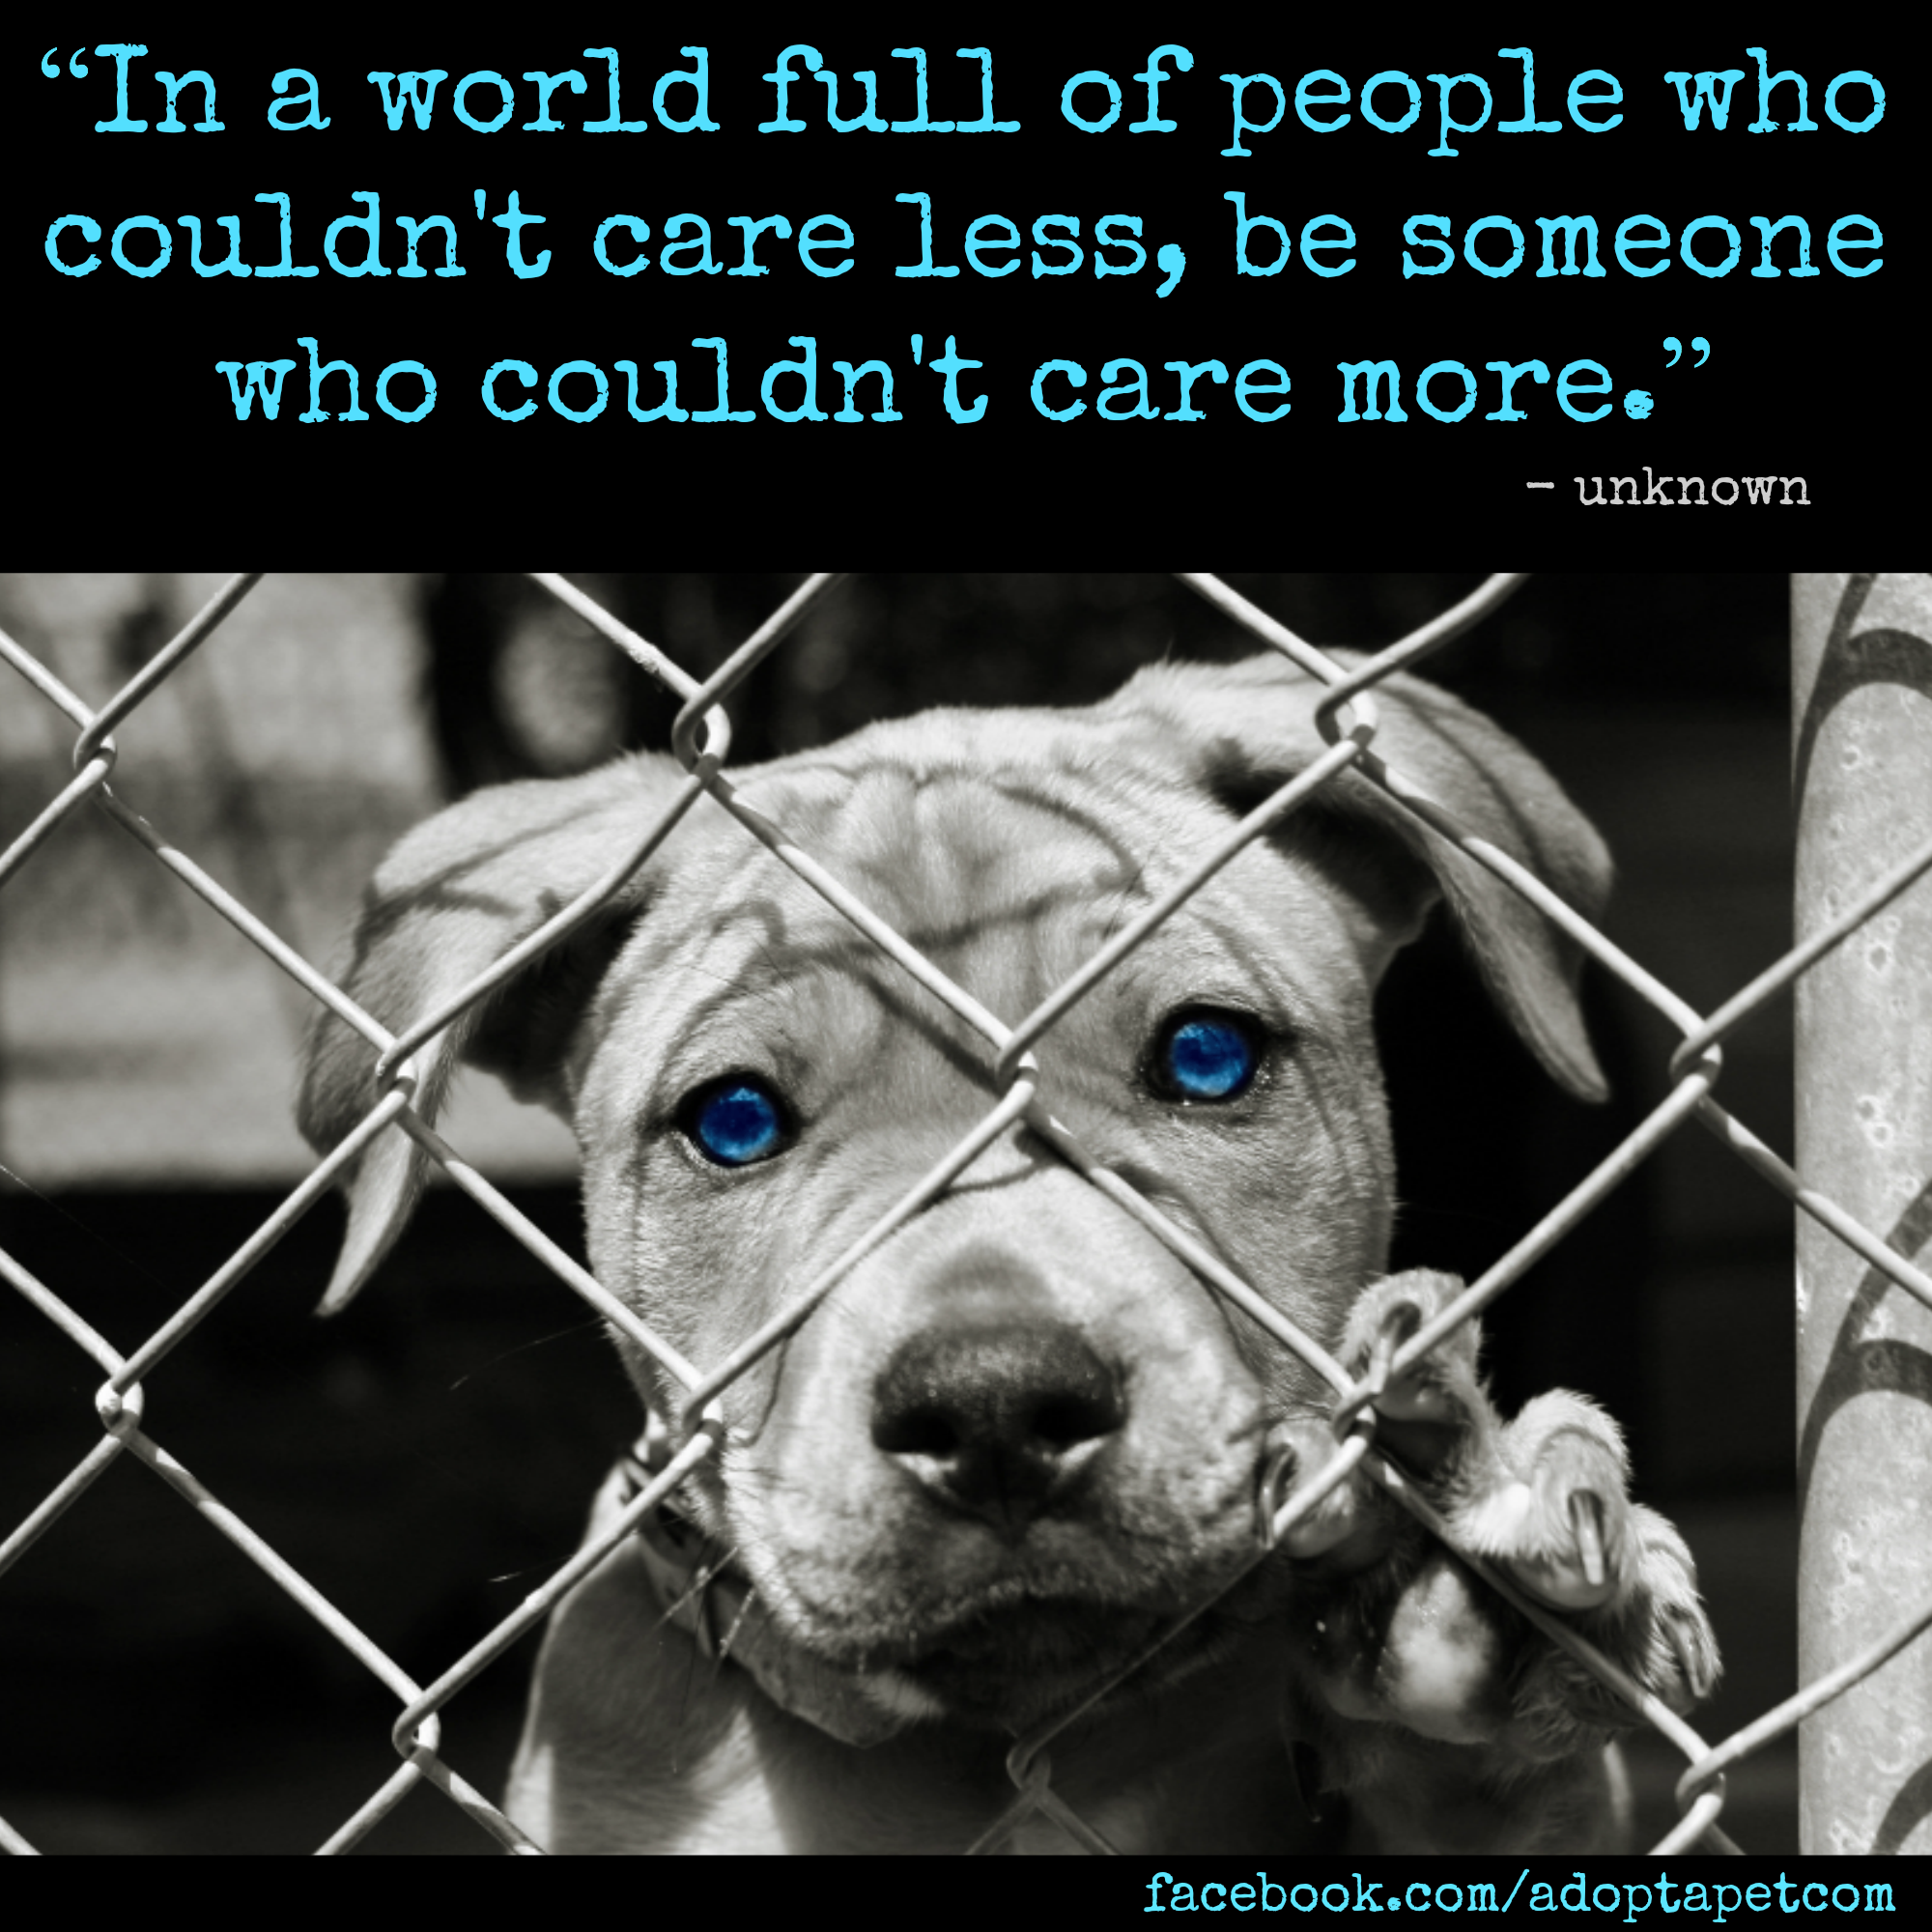 We can all do something! Adopting a pet isn't the only way